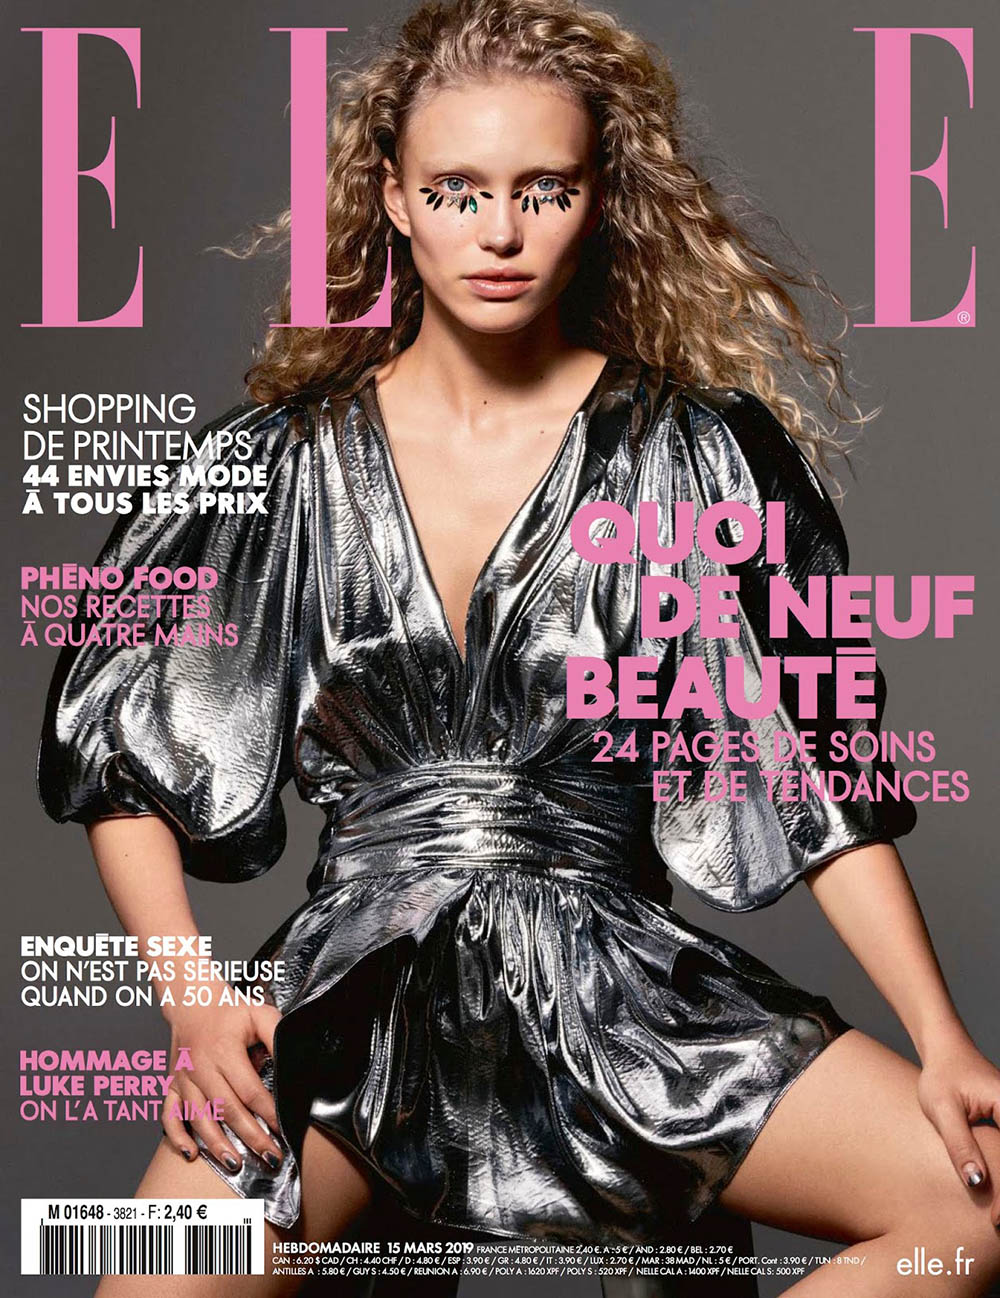 Kim van der Laan covers Elle France March 15th, 2019 by Liz Collins